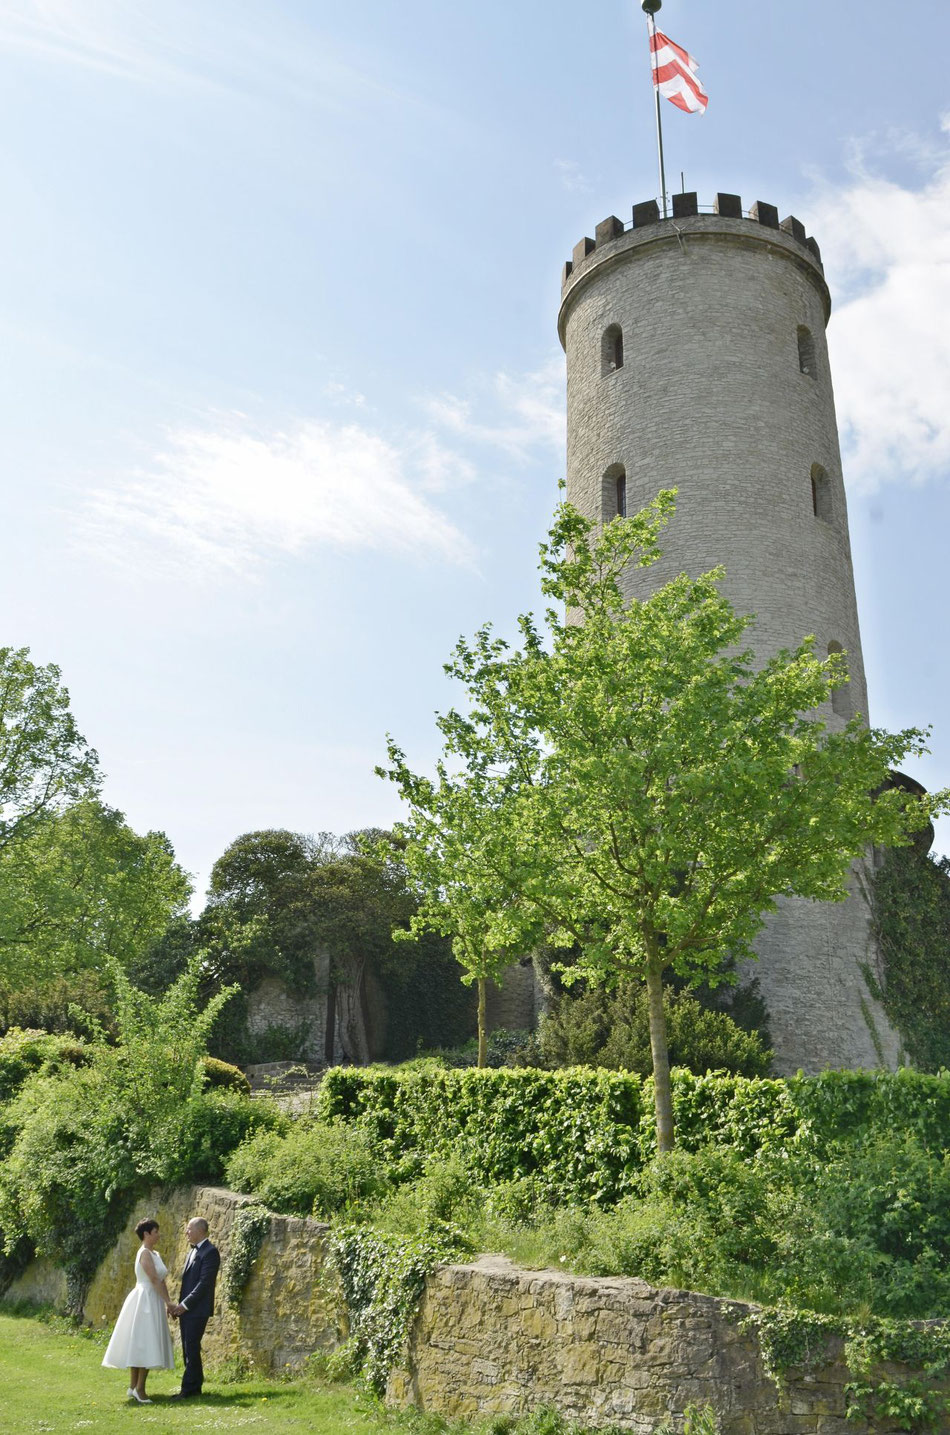 Heiraten auf der Sparrenburg